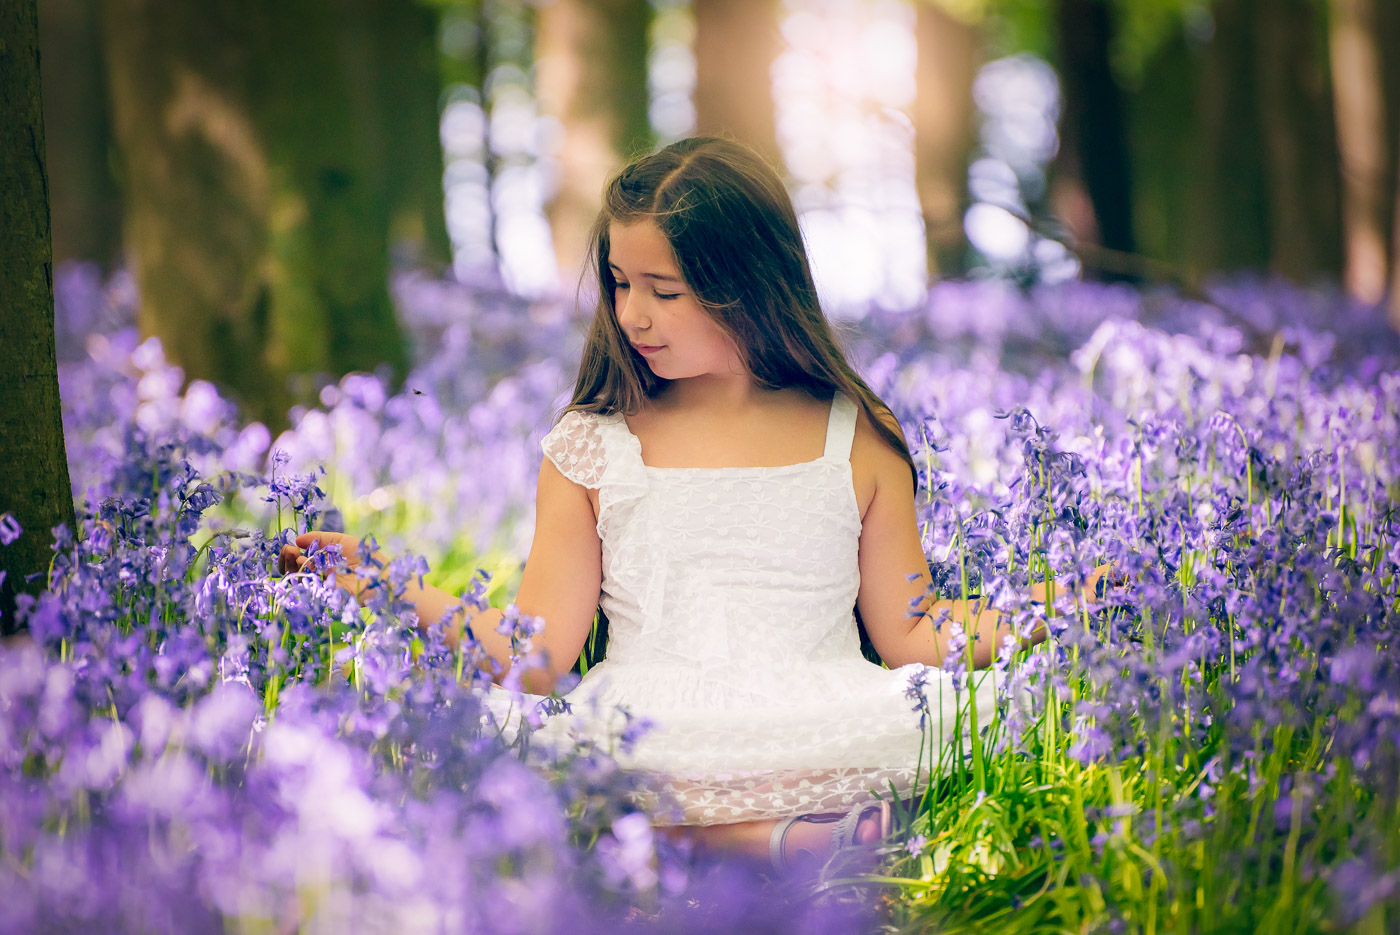 Young girl in a white dress sitting with bluebells and playing with their blossoms